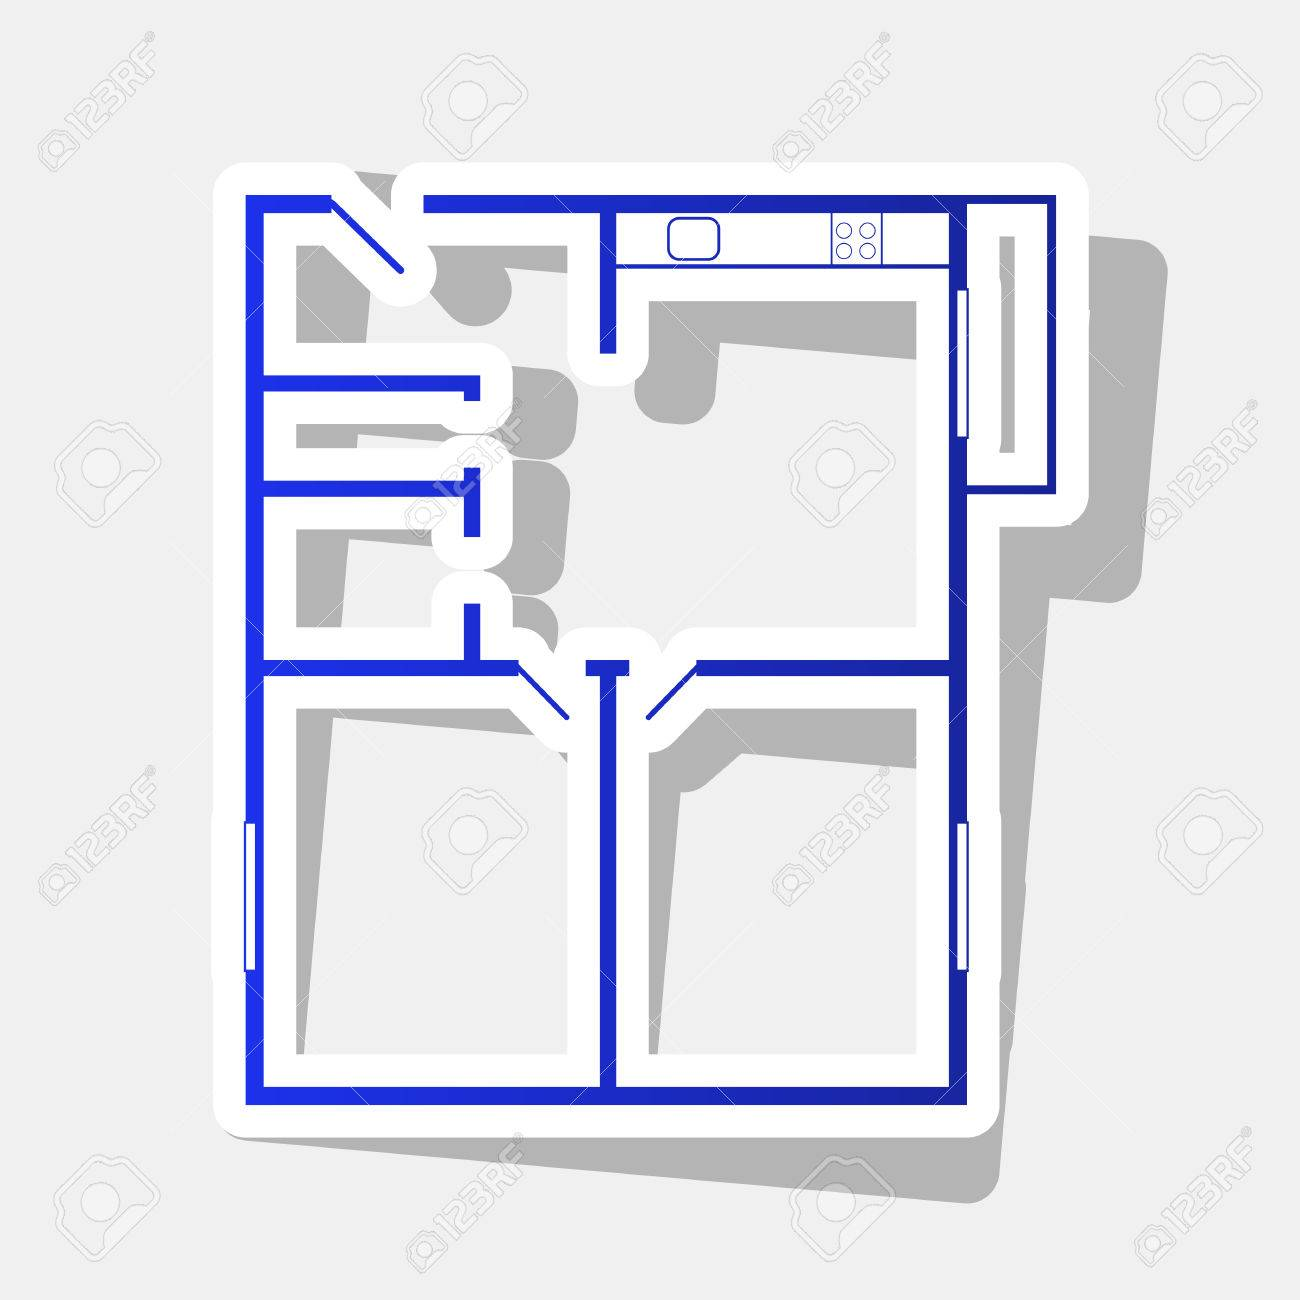 Apartment house floor plans. Vector. New year bluish icon with.. on construction icons, workshop icons, drafting icons, design icons, land icons, fireplace icons, farm icons, architecture icons, drawing icons, head icons, study icons, foundation icons, room icons, builder icons, remodeling icons, human icons, london icons, housing icons, household icons, architectural icons,